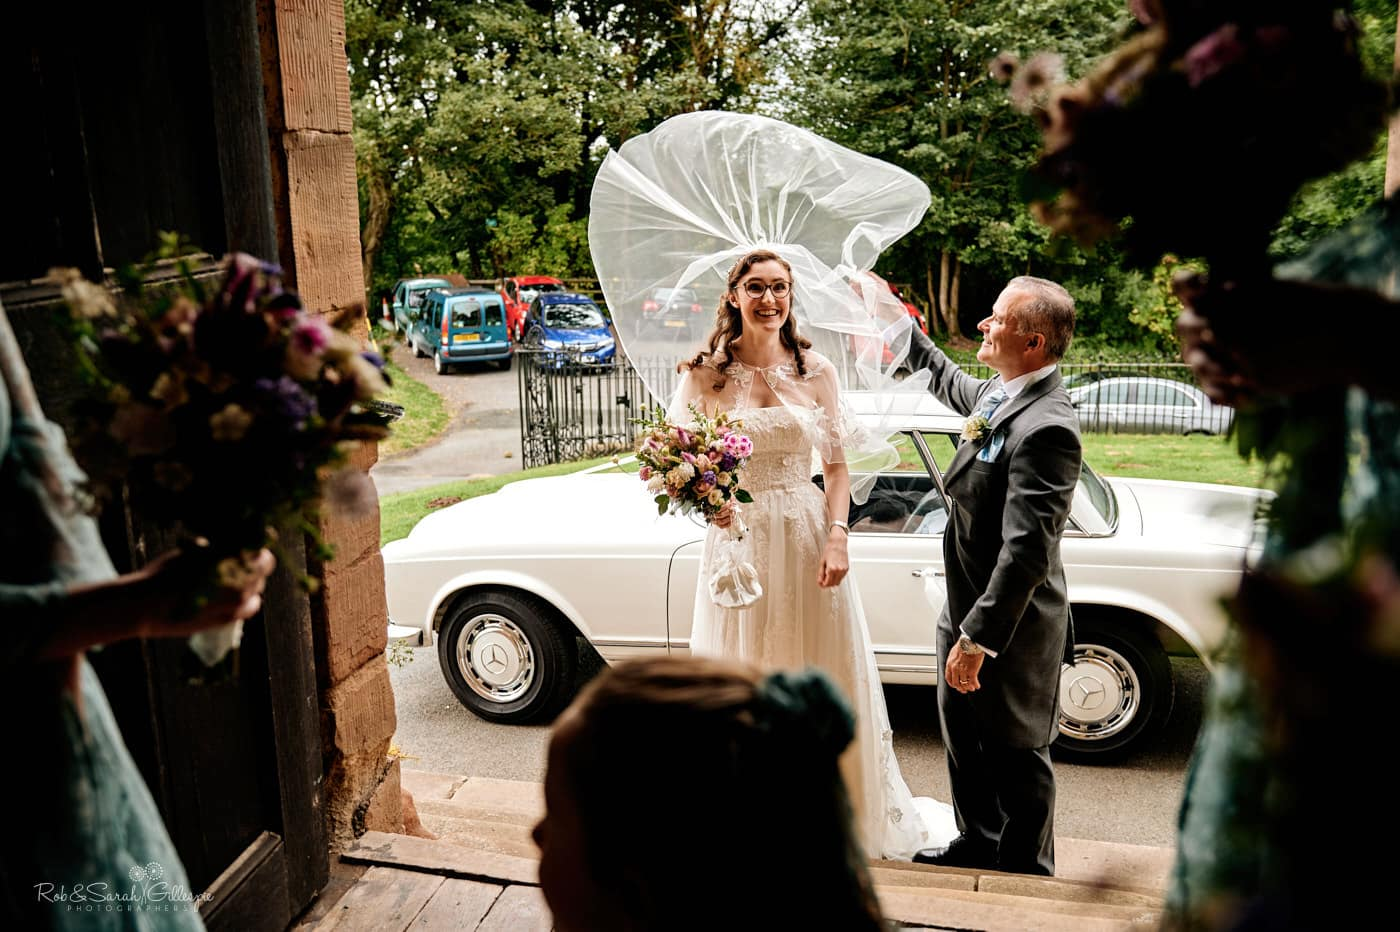 Bride's veil billows in the wind at Hanbury Church wedding